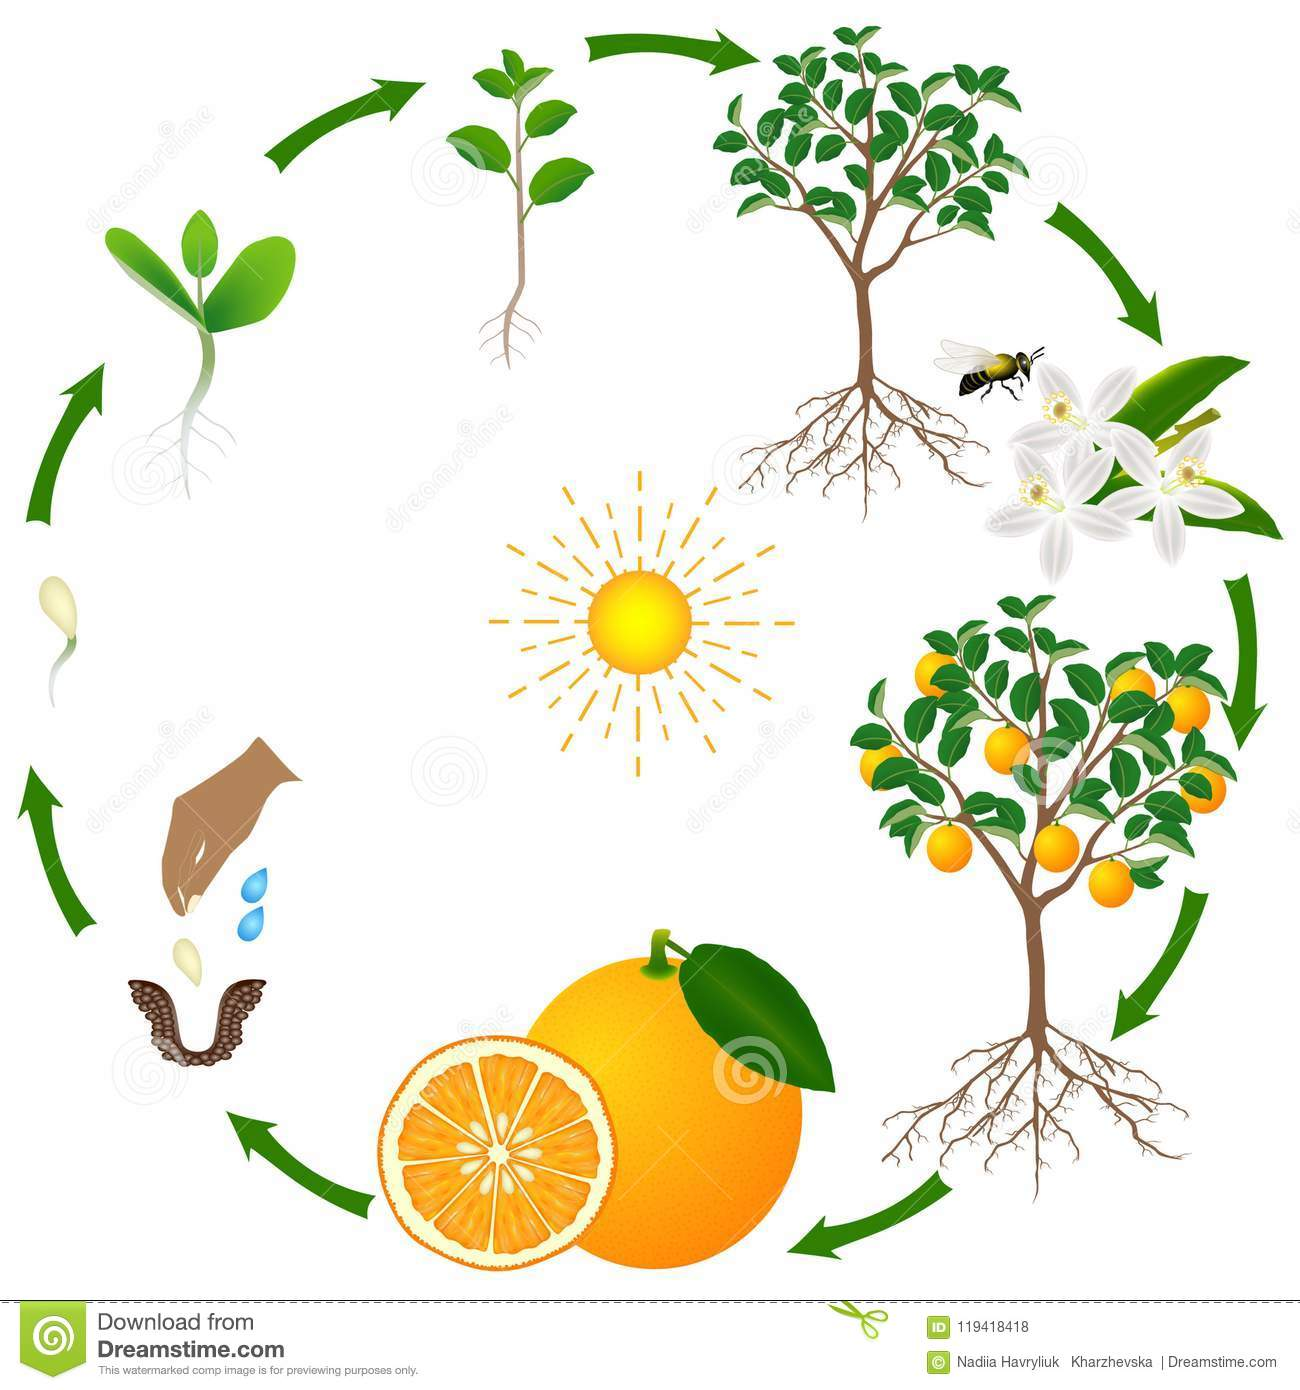 A Life Cycle Of An Orange Tree On A White Background